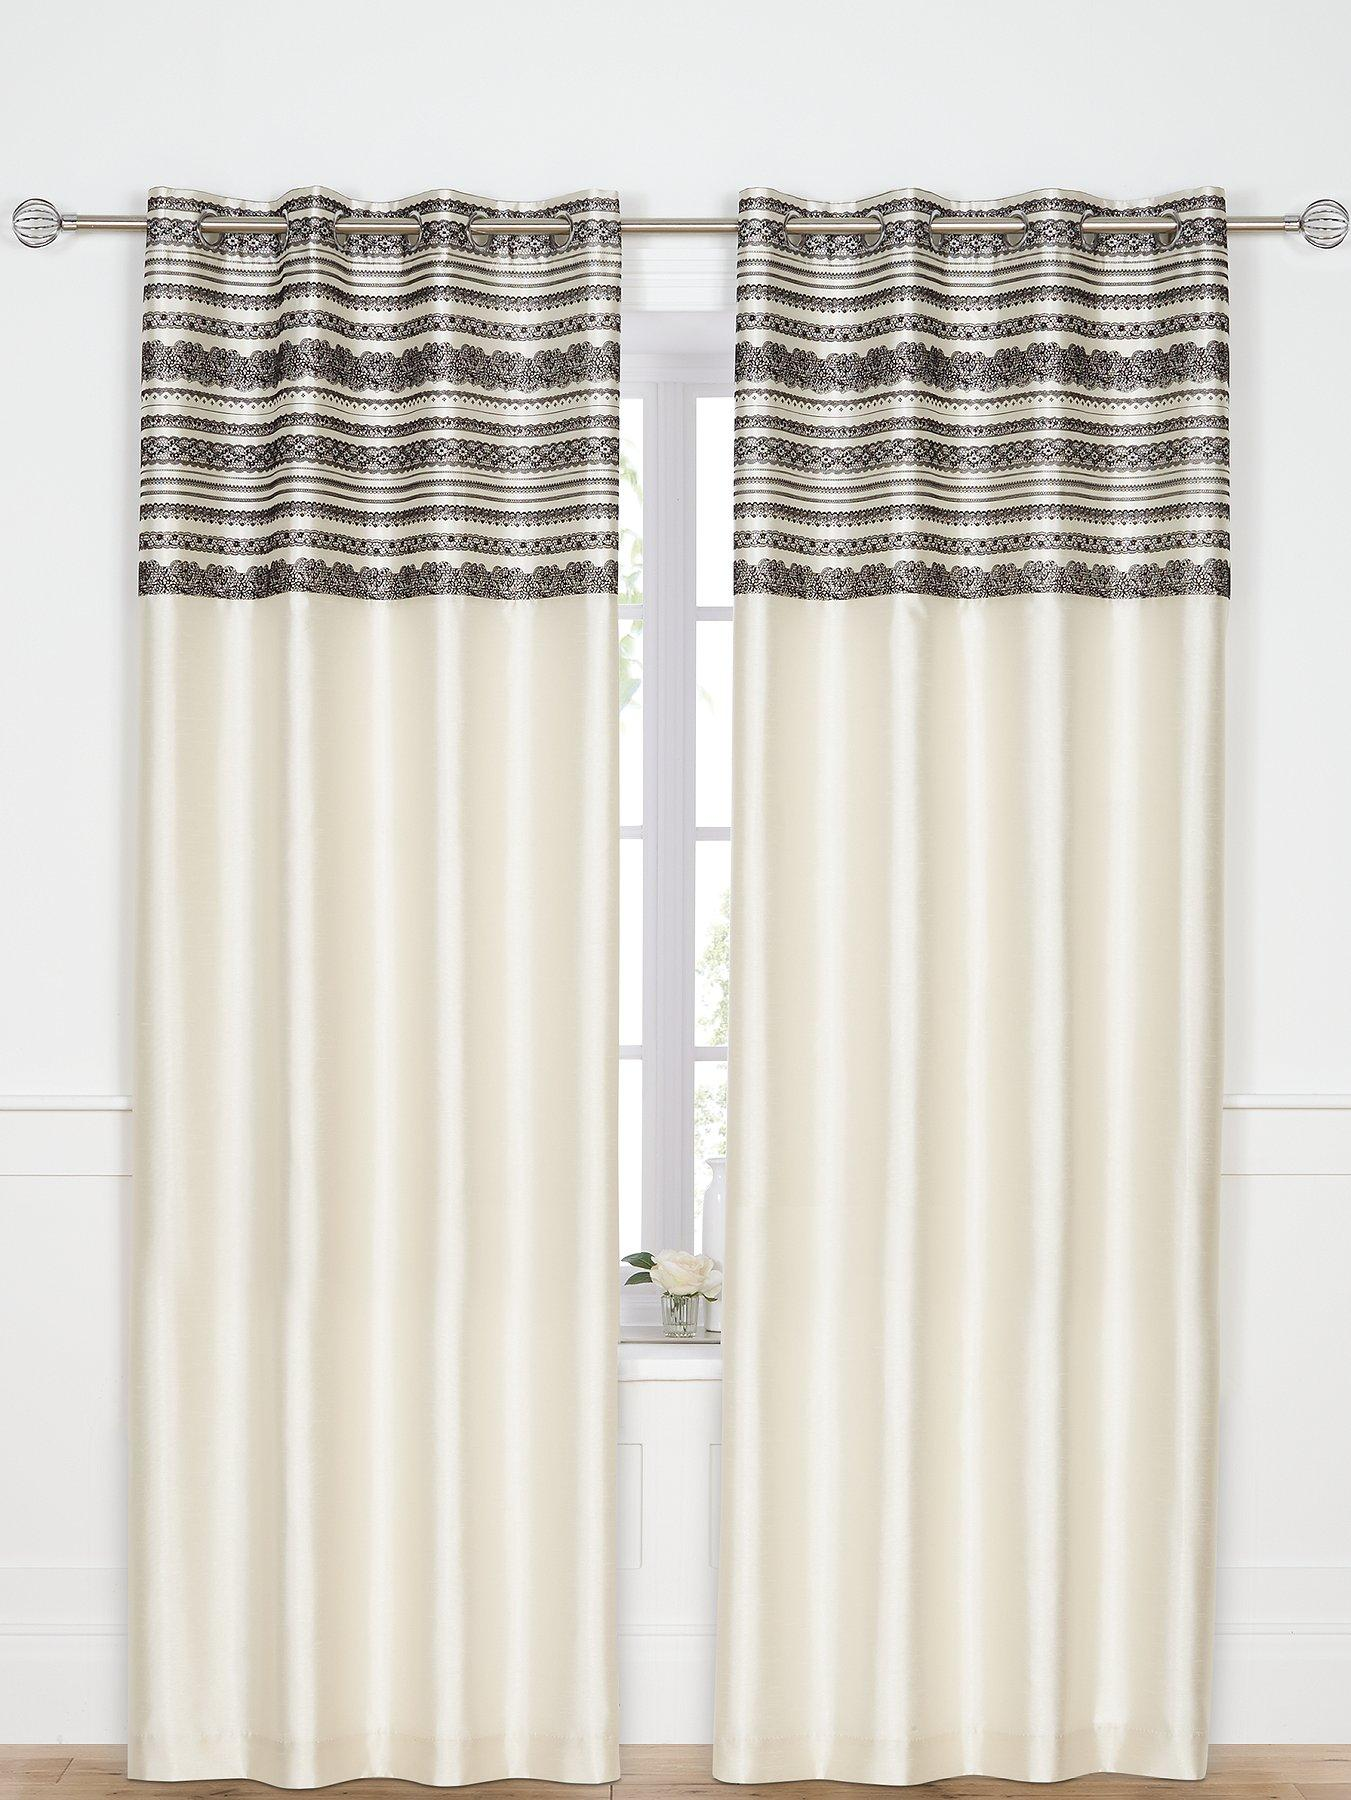 Cheap Curtains Online Lace Curtain Shop For Cheap Curtains And Blinds And Save